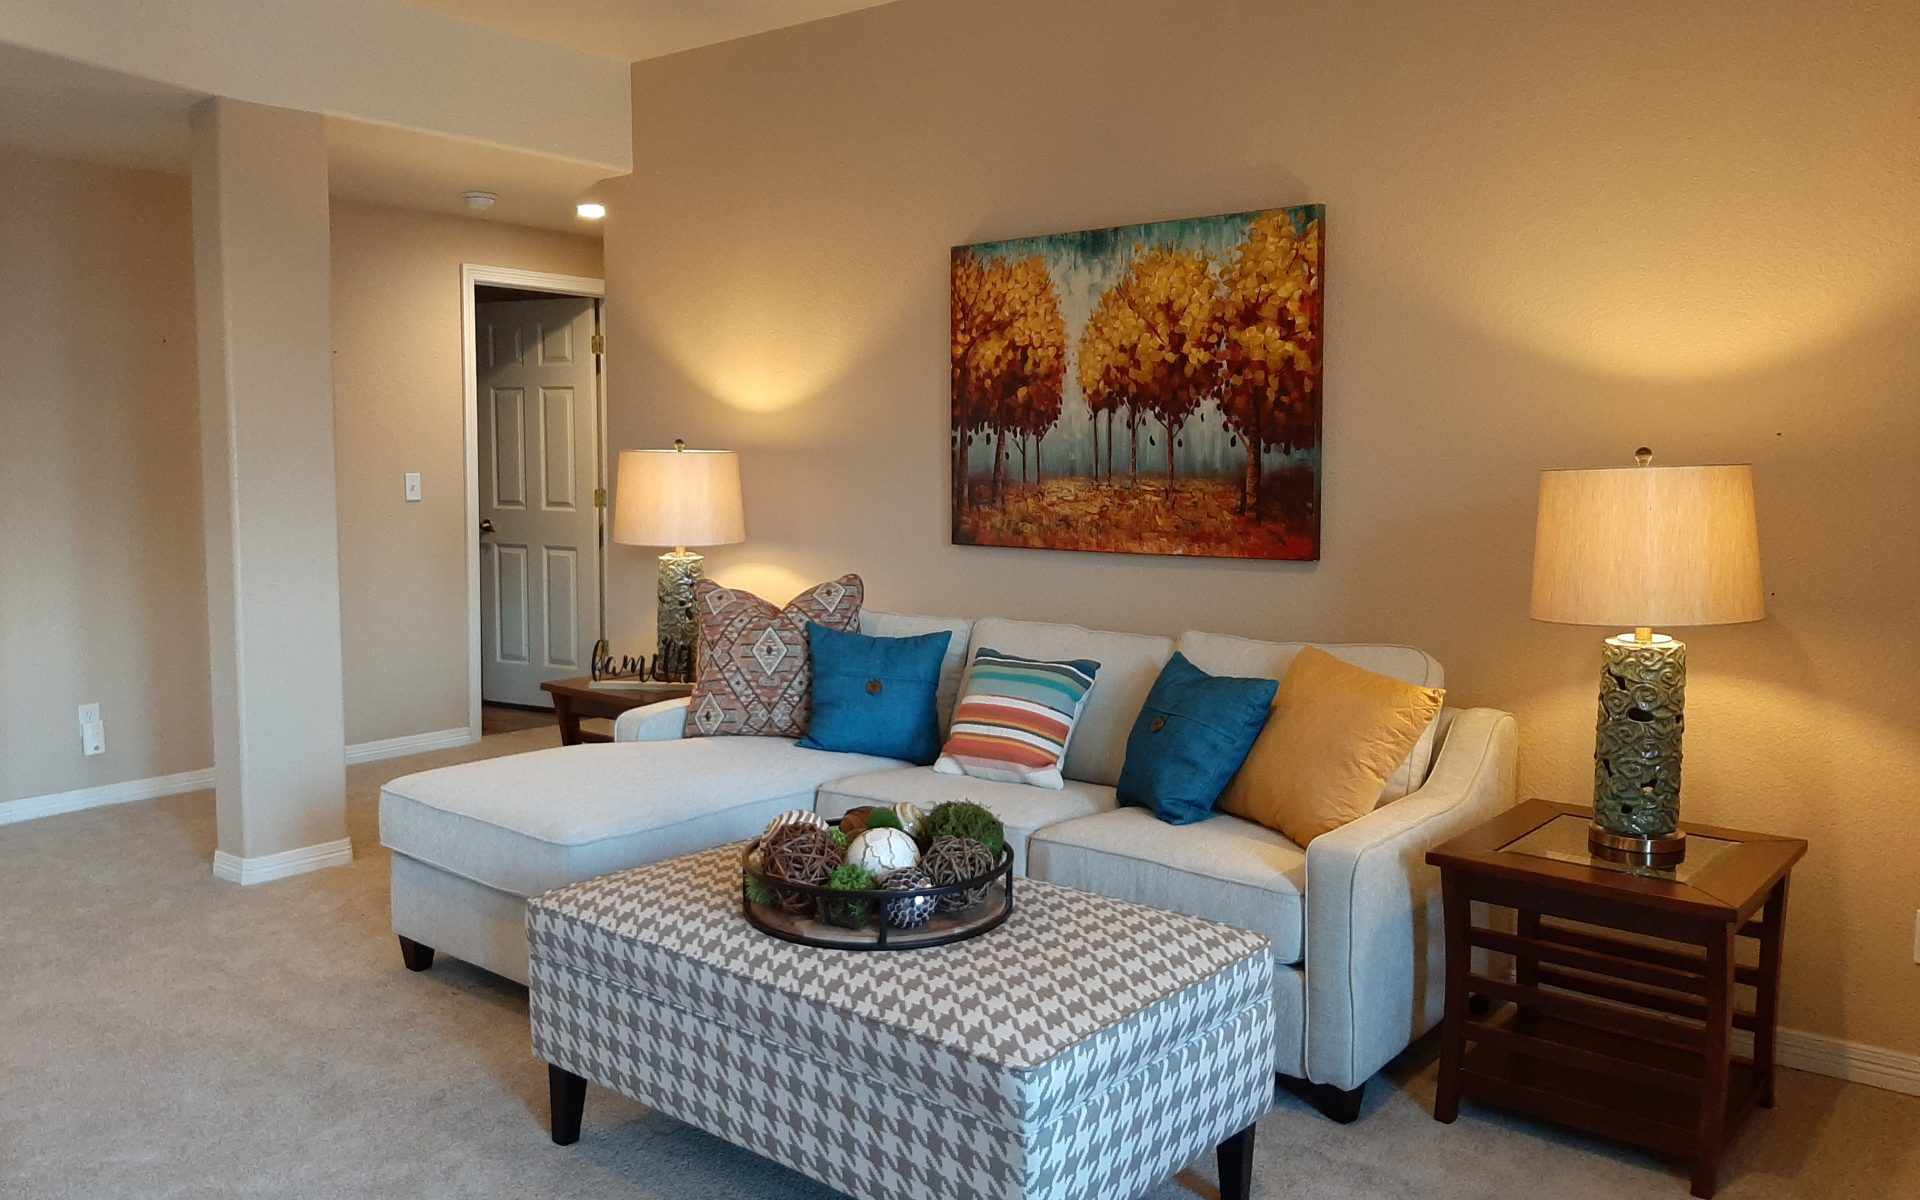 Occupied Staging service